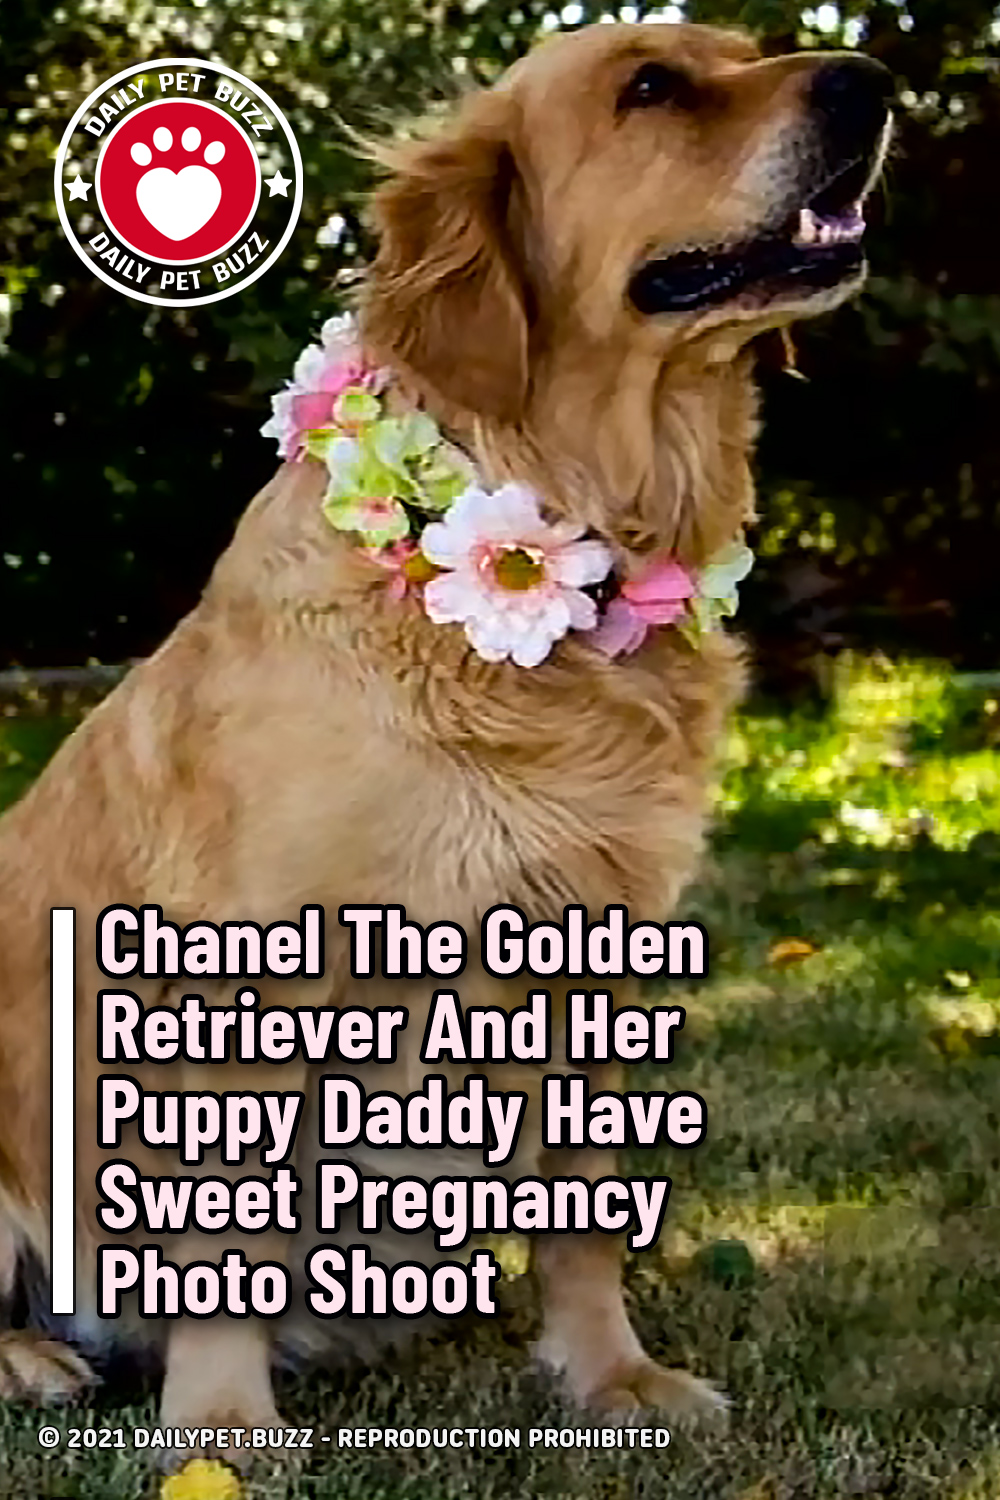 Chanel The Golden Retriever And Her Puppy Daddy Have Sweet Pregnancy Photo Shoot